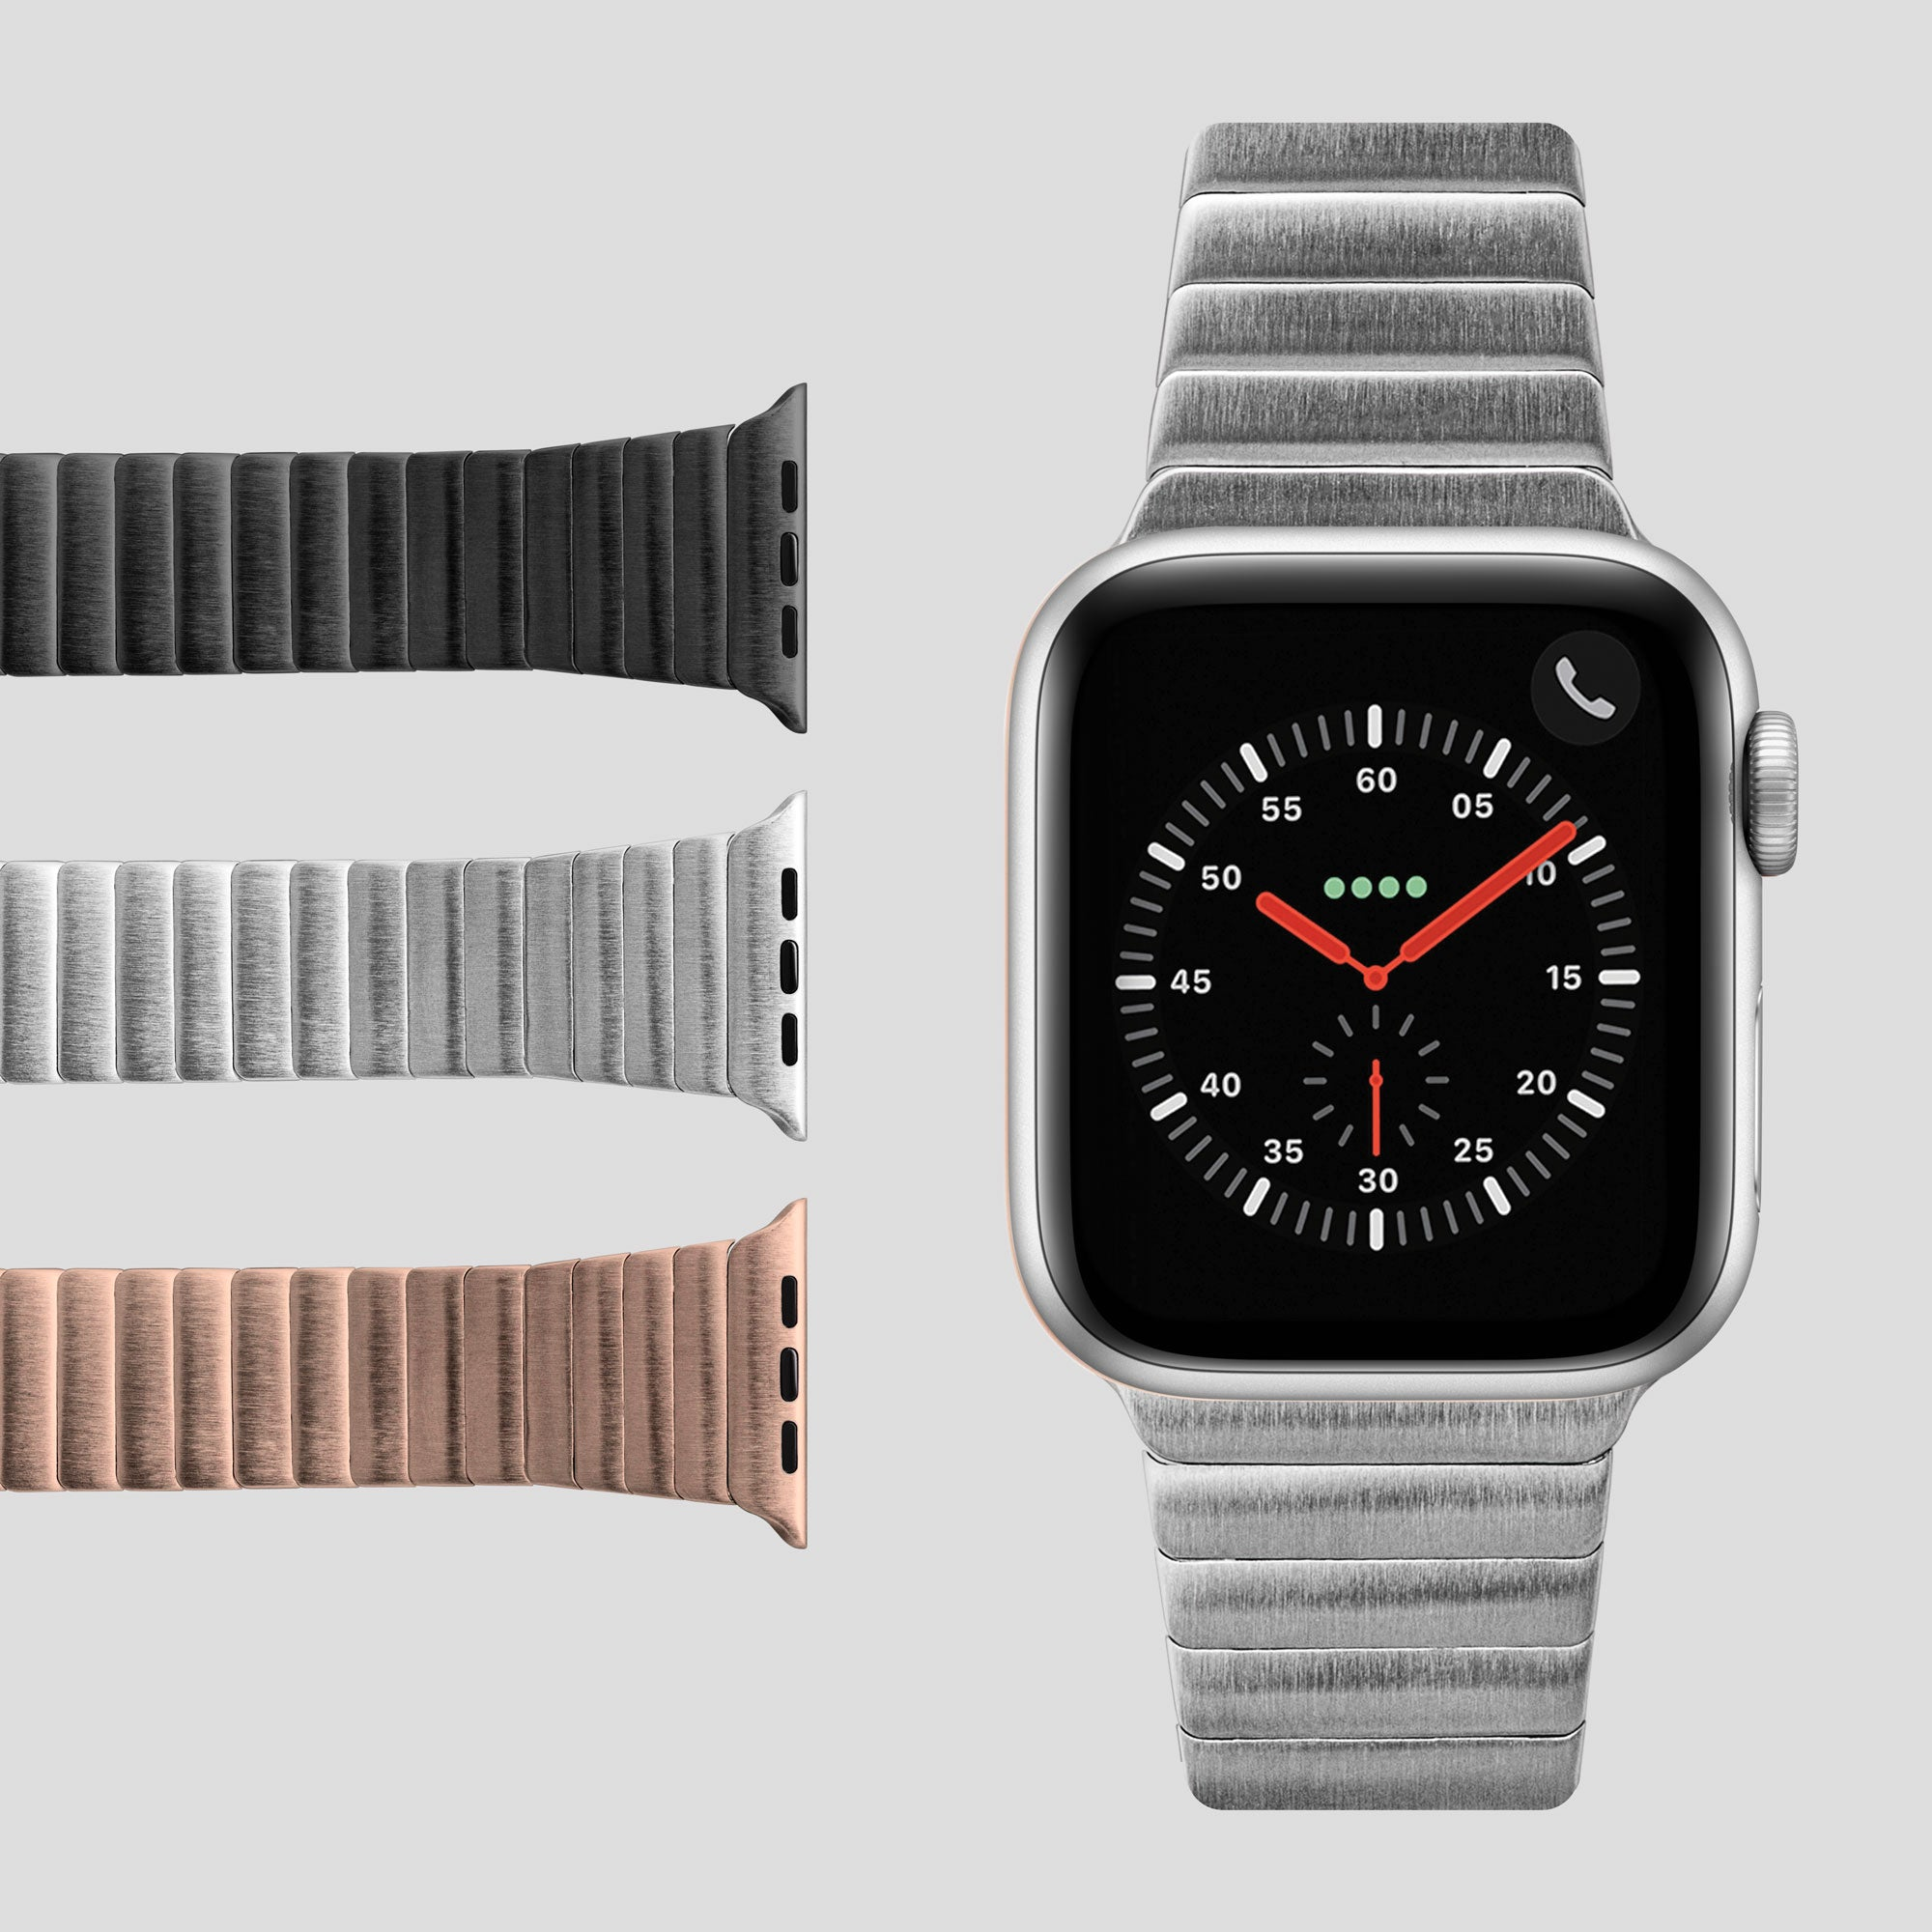 LINKS Watch Strap for Apple Watch Series 1/2/3/4/5 - LAUT Japan